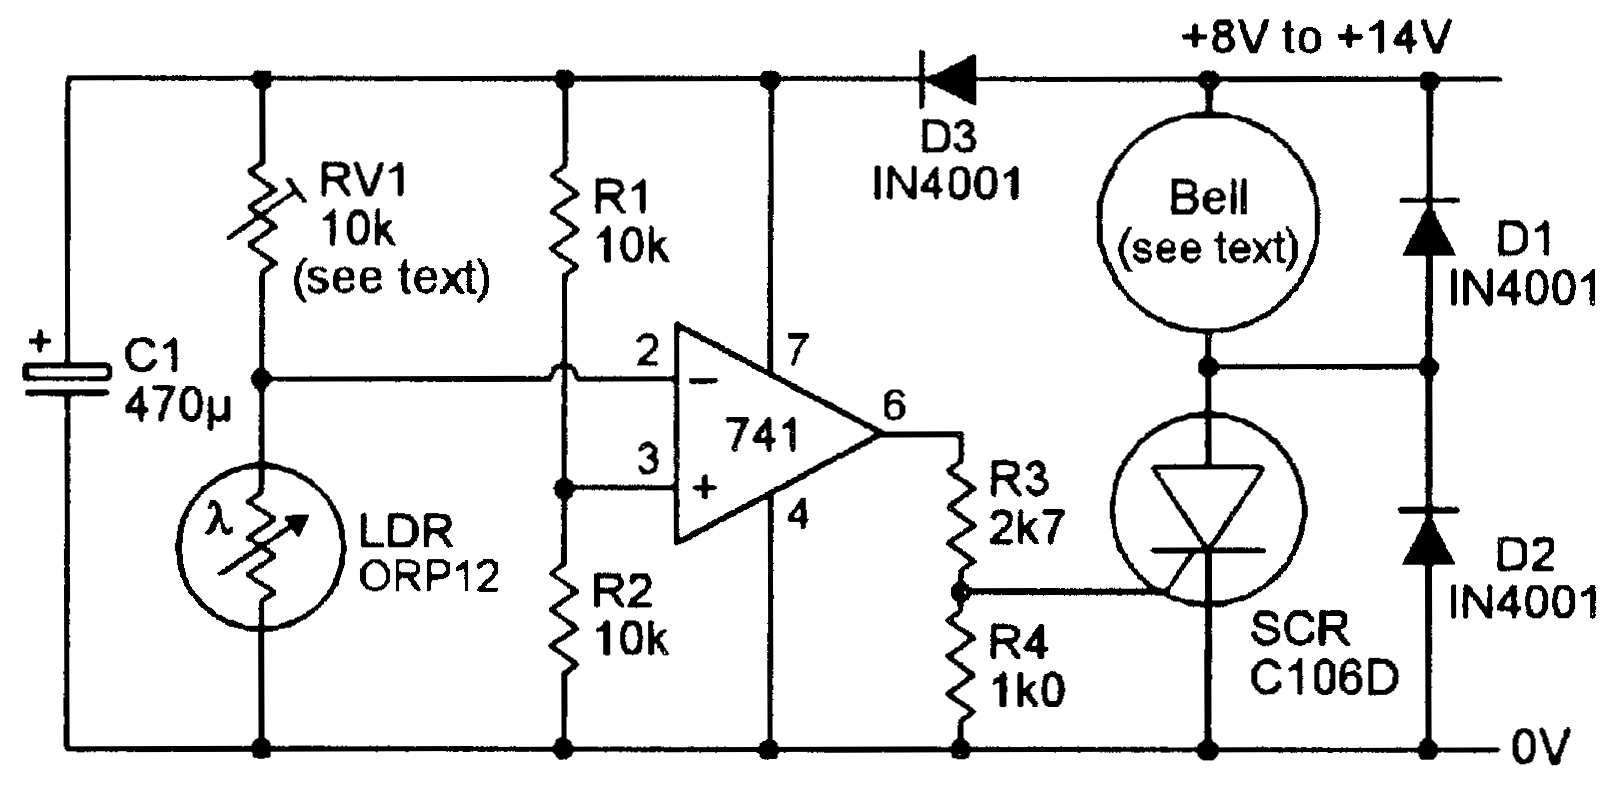 Light Sensitive Circuits Nuts Volts Magazine 11 Pin Latching Relay Wiring Diagram A Bell Output Ldr Alarm